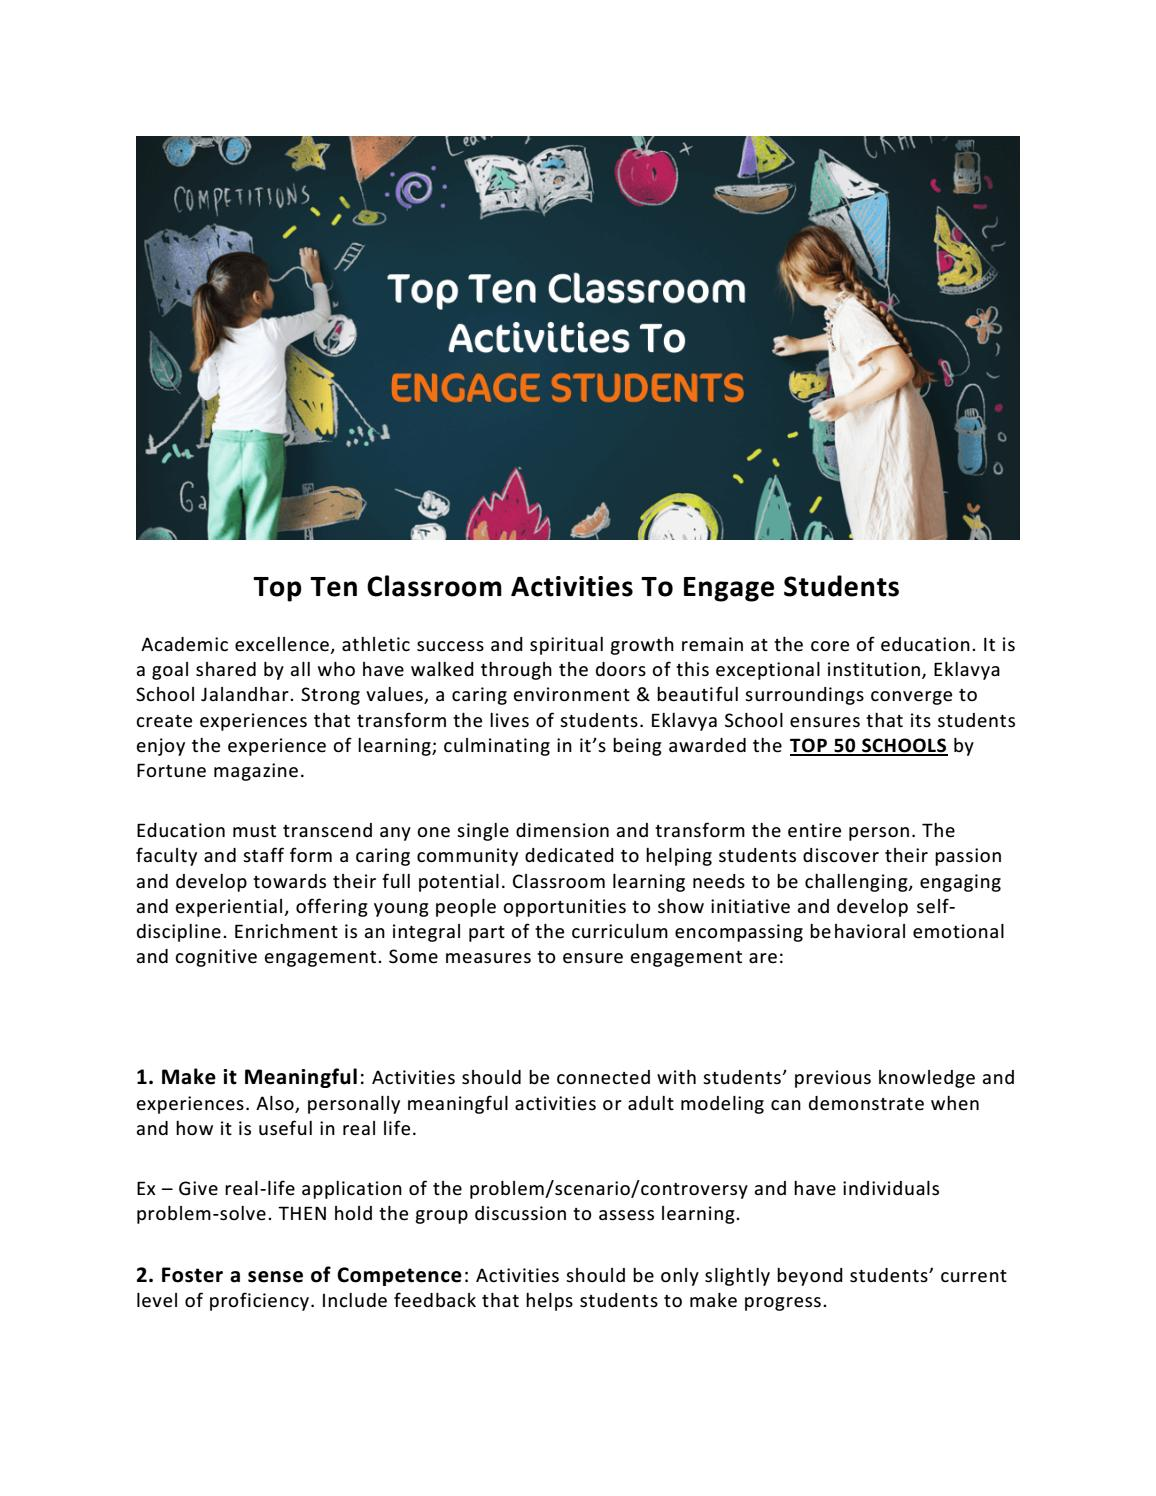 Top Ten Classroom Activities To Engage Students by Eklavya